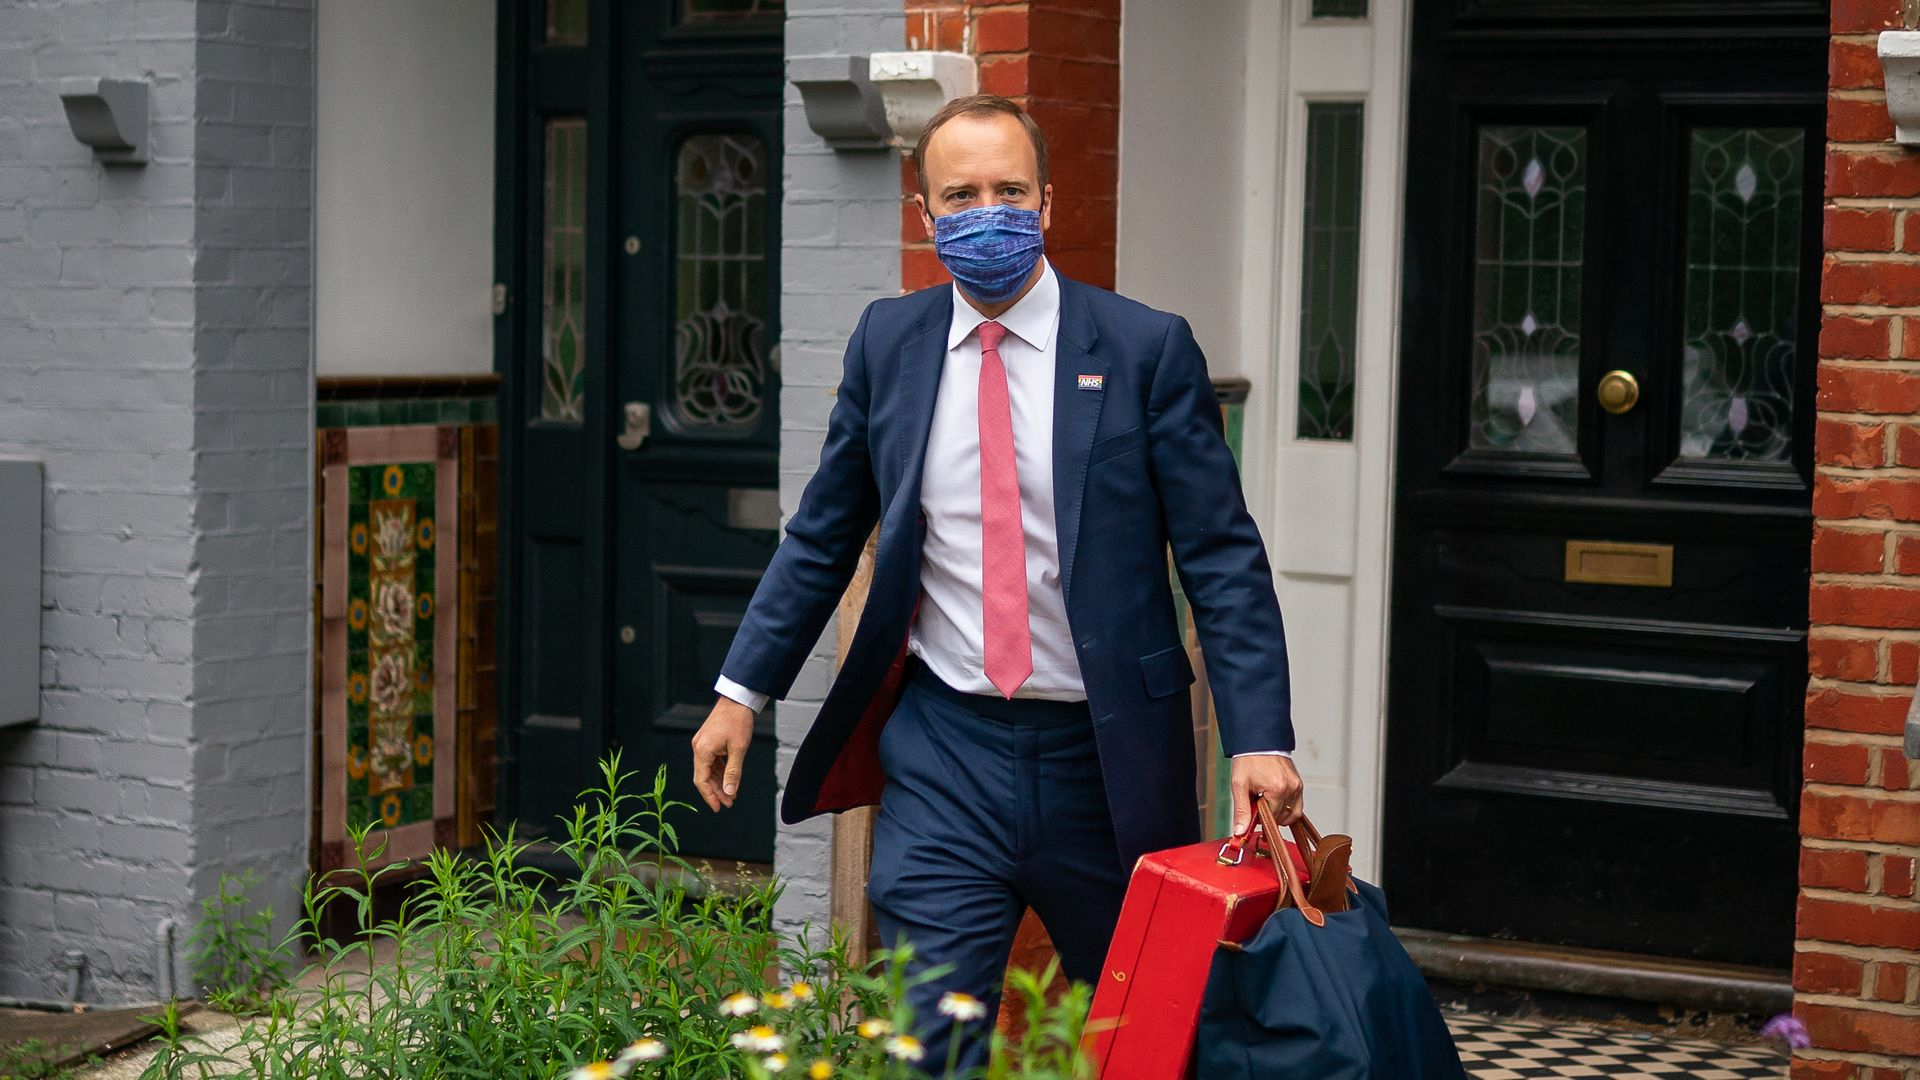 Health Minister Matt Hancock outside his home in north-west London, the day after a series of WhatsApp exchanges were published, criticising him over coronavirus testing - Credit: PA